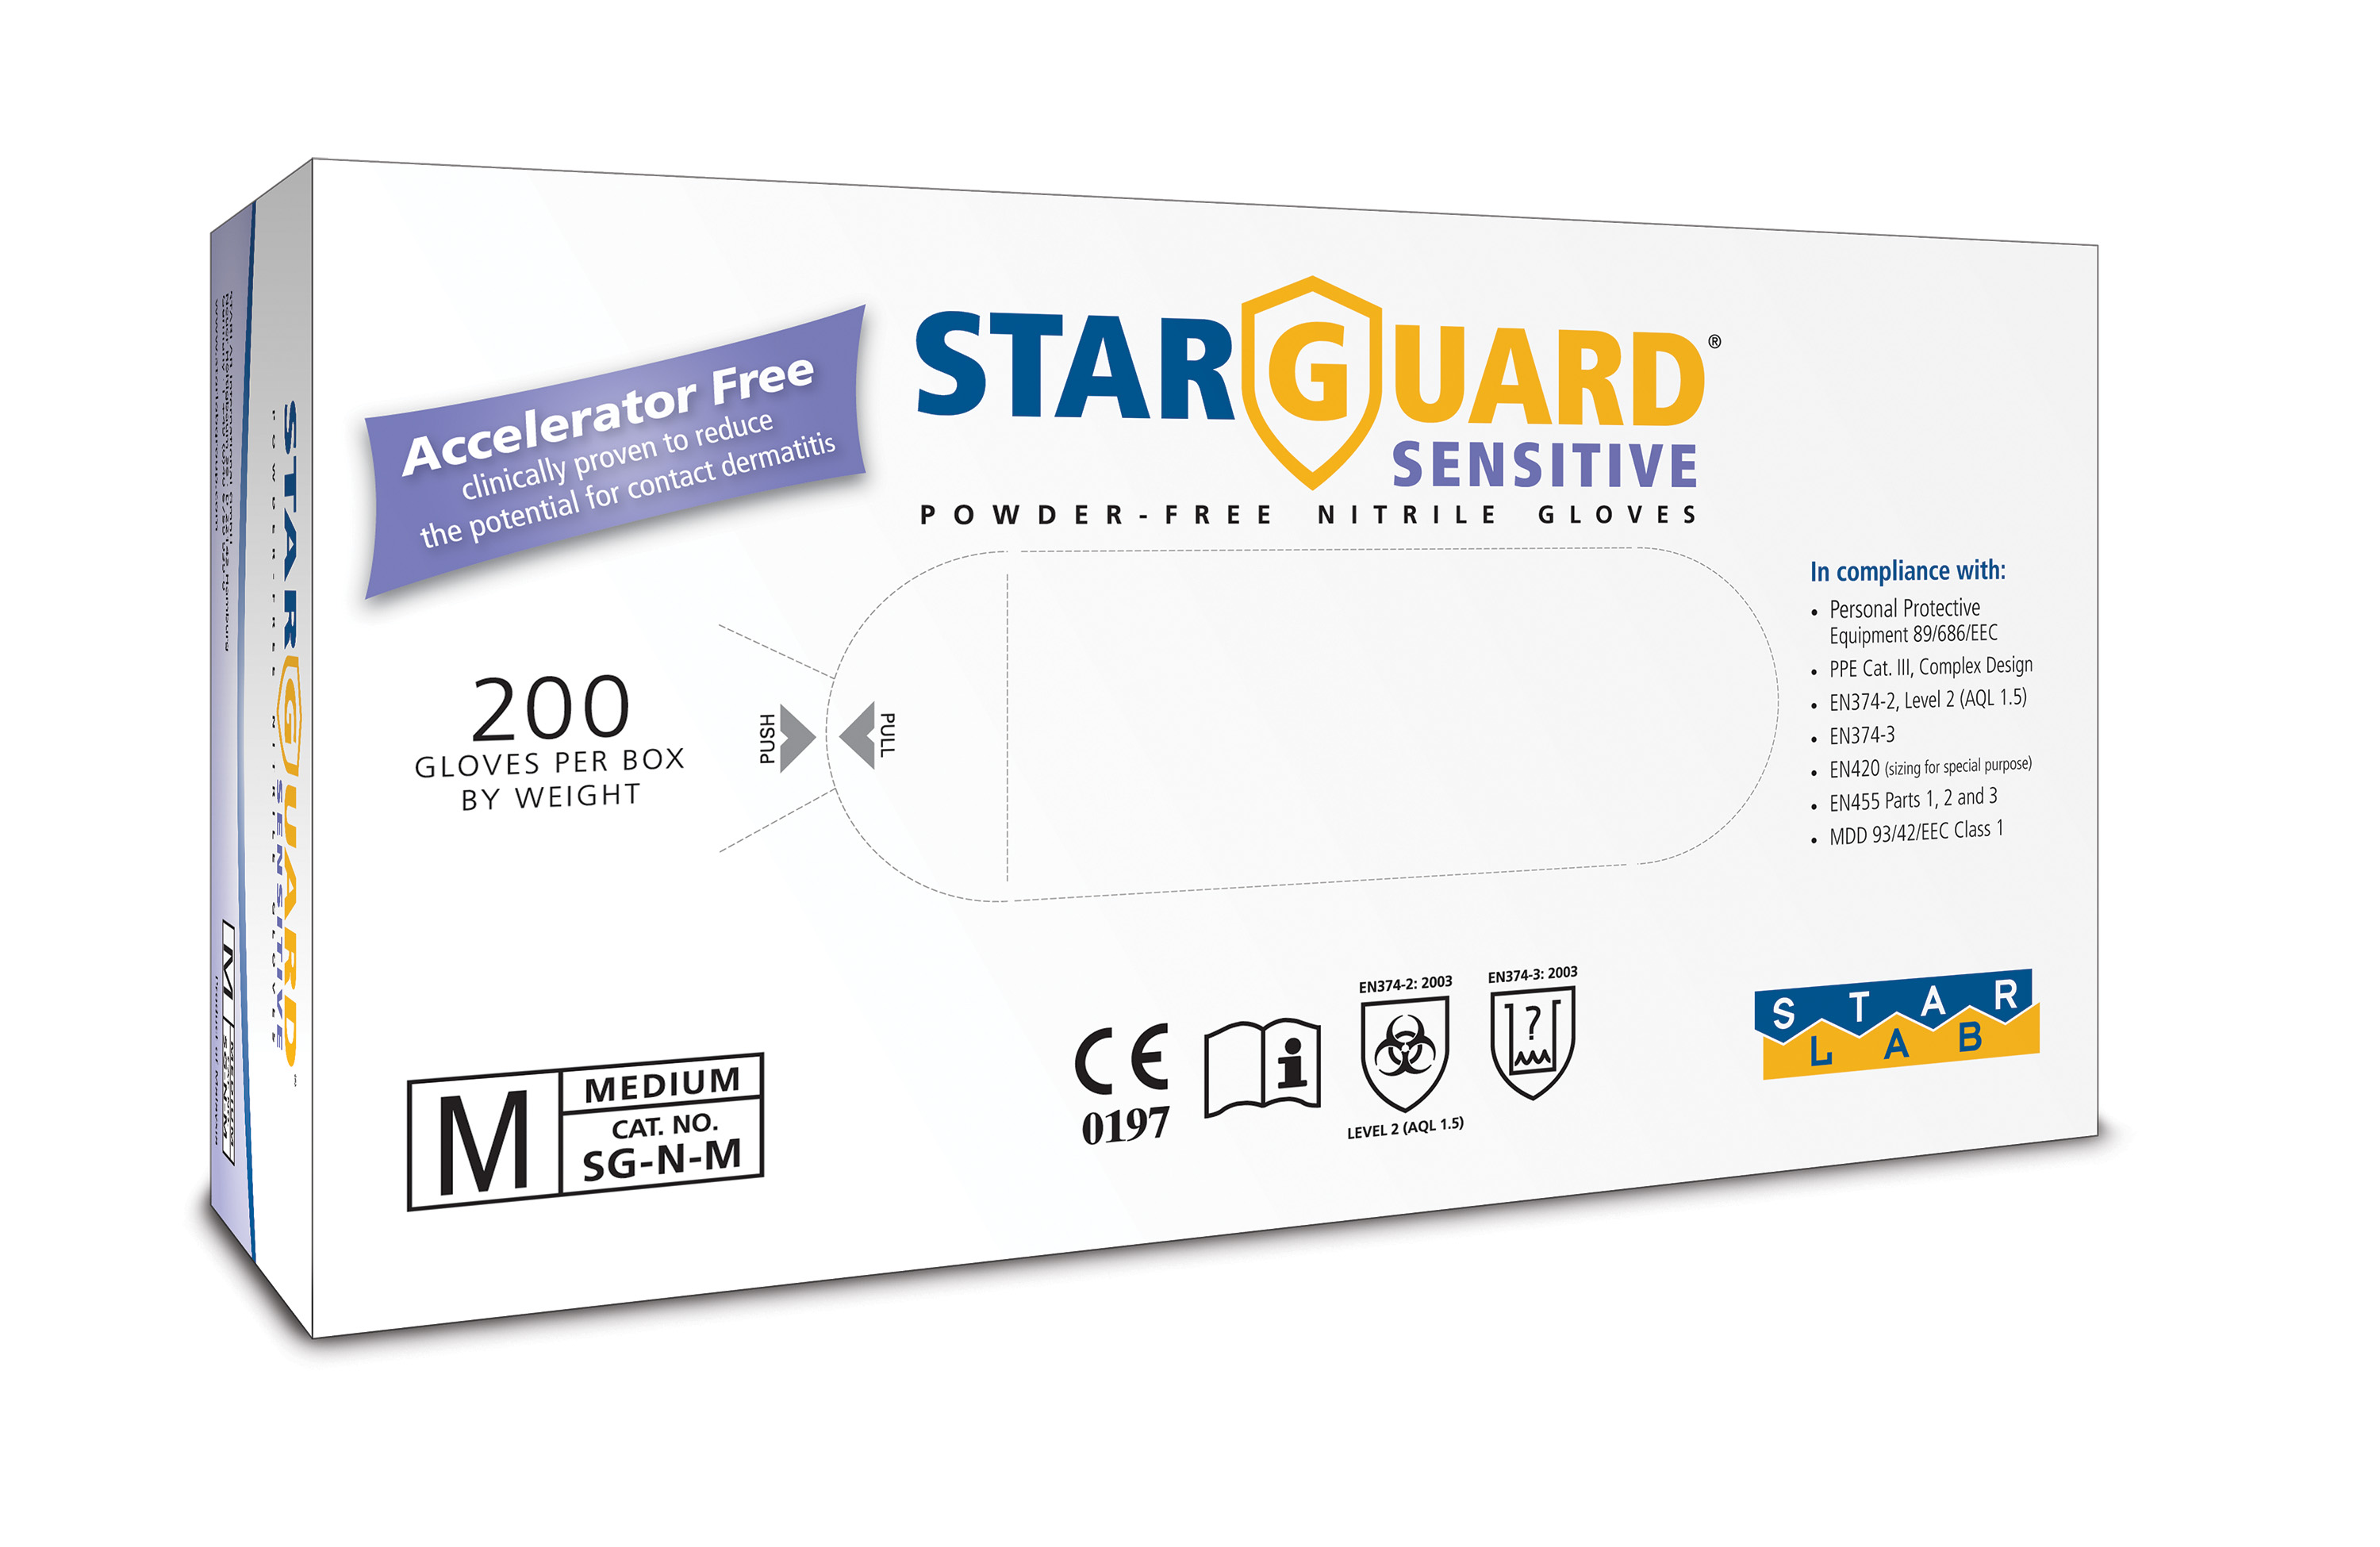 StarGuard SENSITIVE Nitrile Gloves, Powder Free, Blue, Size L, Pk/ 10 x 200 gloves - just sFr. 7,85/100 gloves